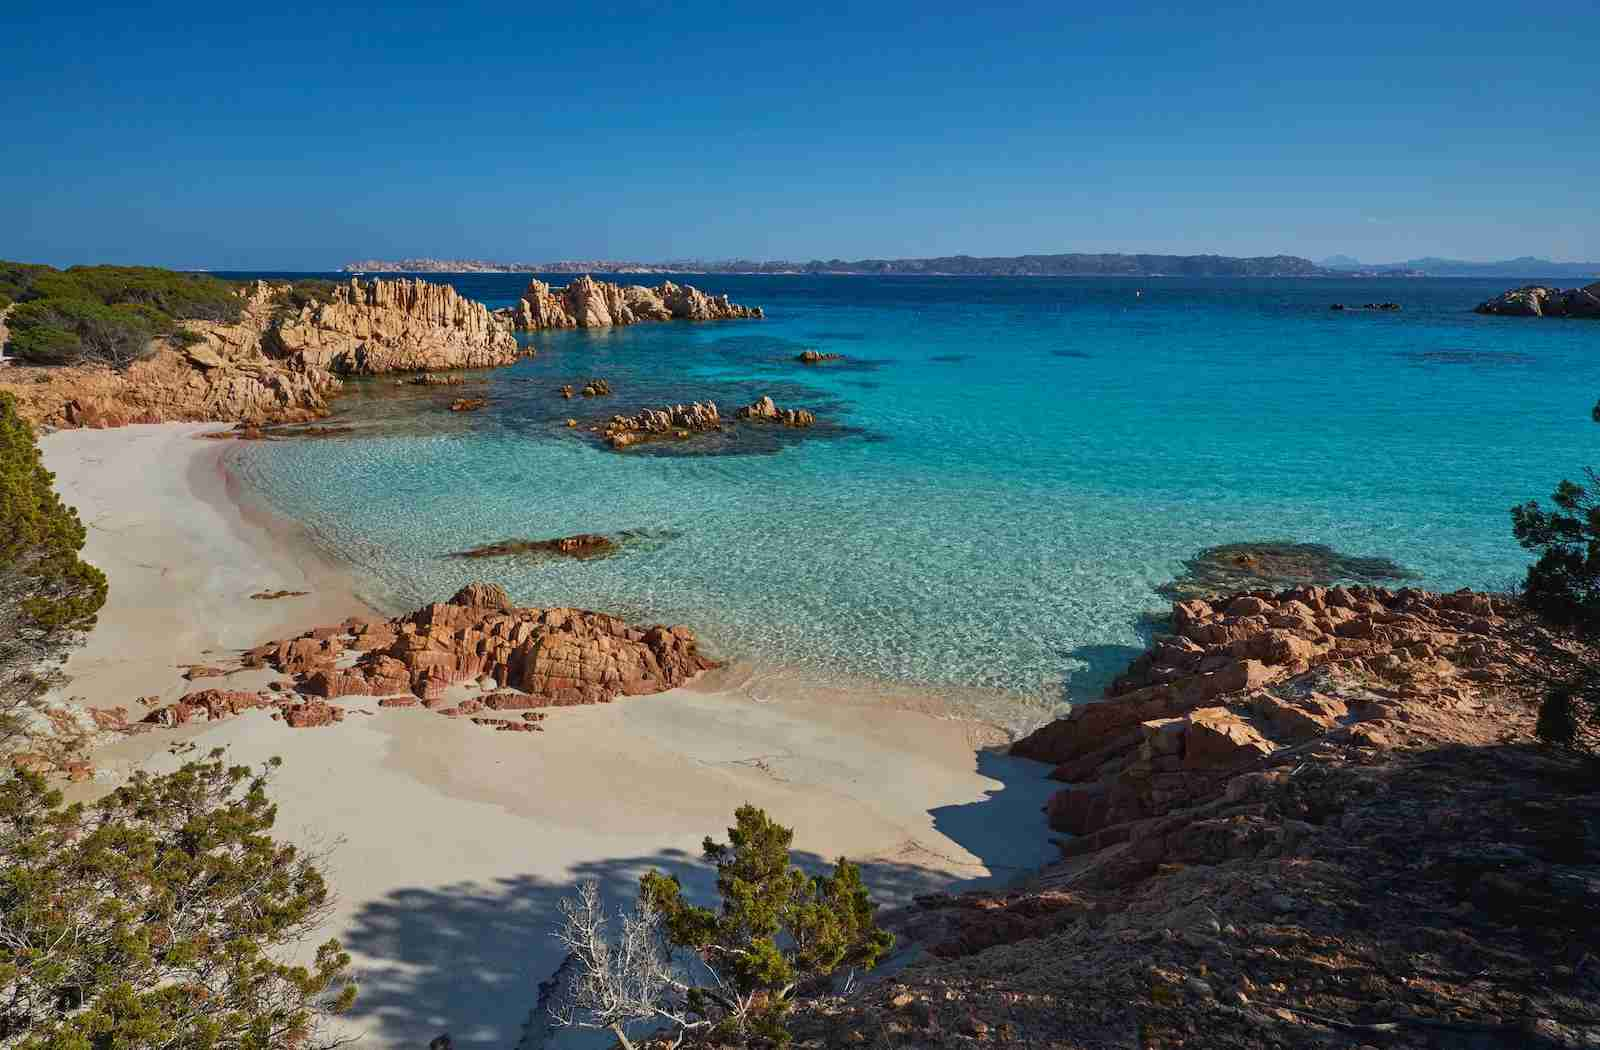 La Maddalena National Park on Sardinia. (Photo by Westend61/Getty Images)